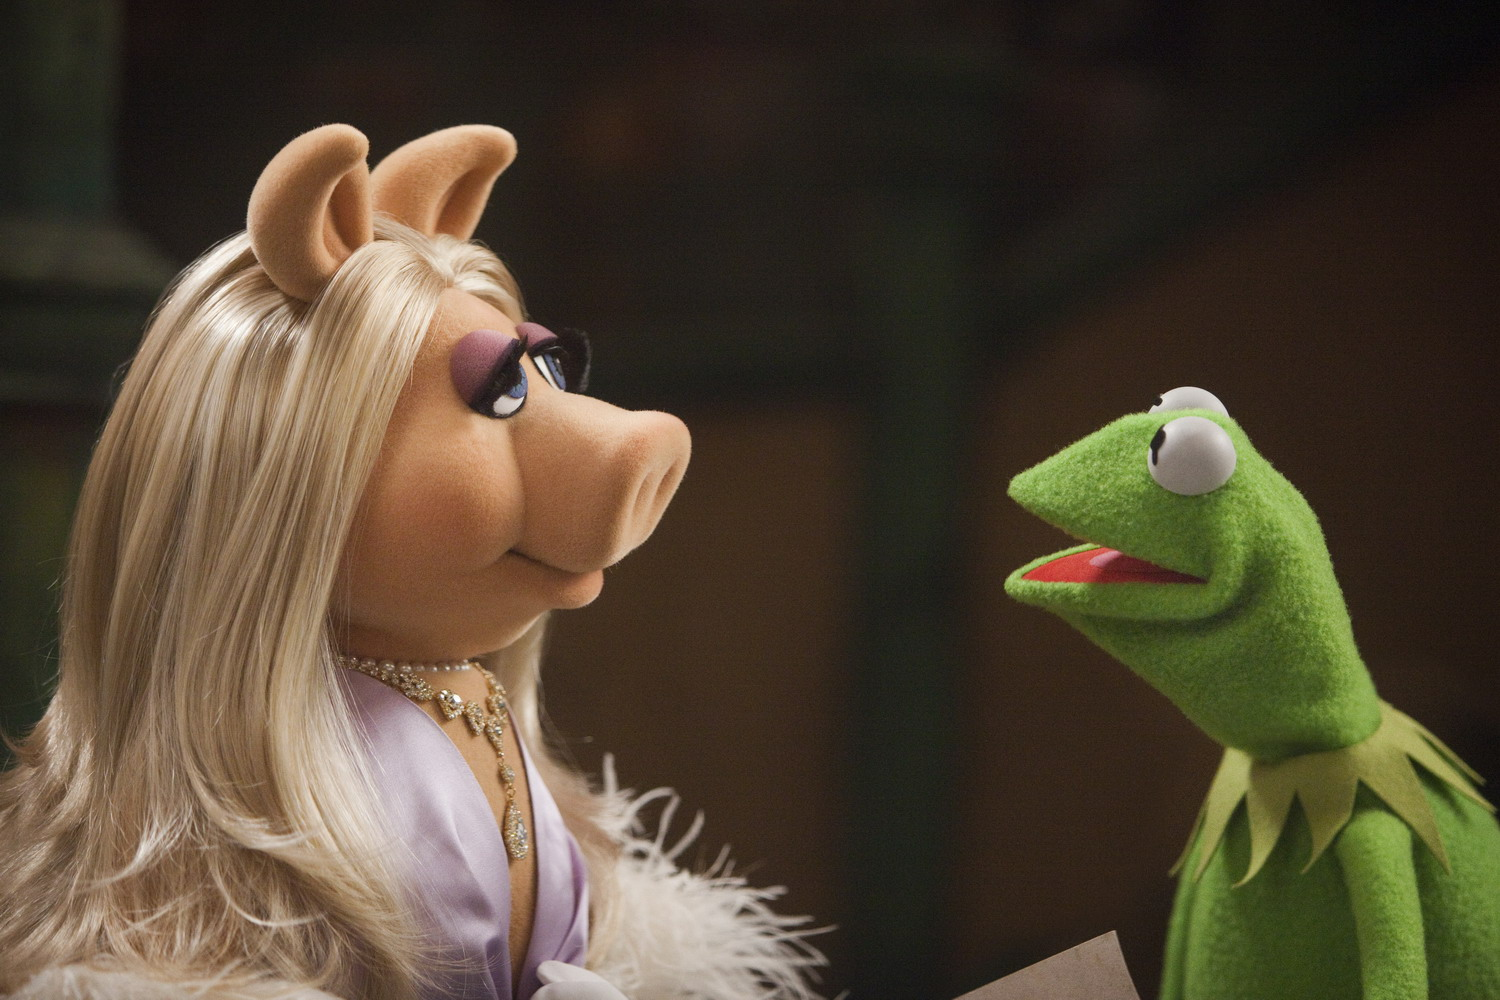 Kermit and Miss Piggy make first public appearance together since shock split – and it's awkward as hell